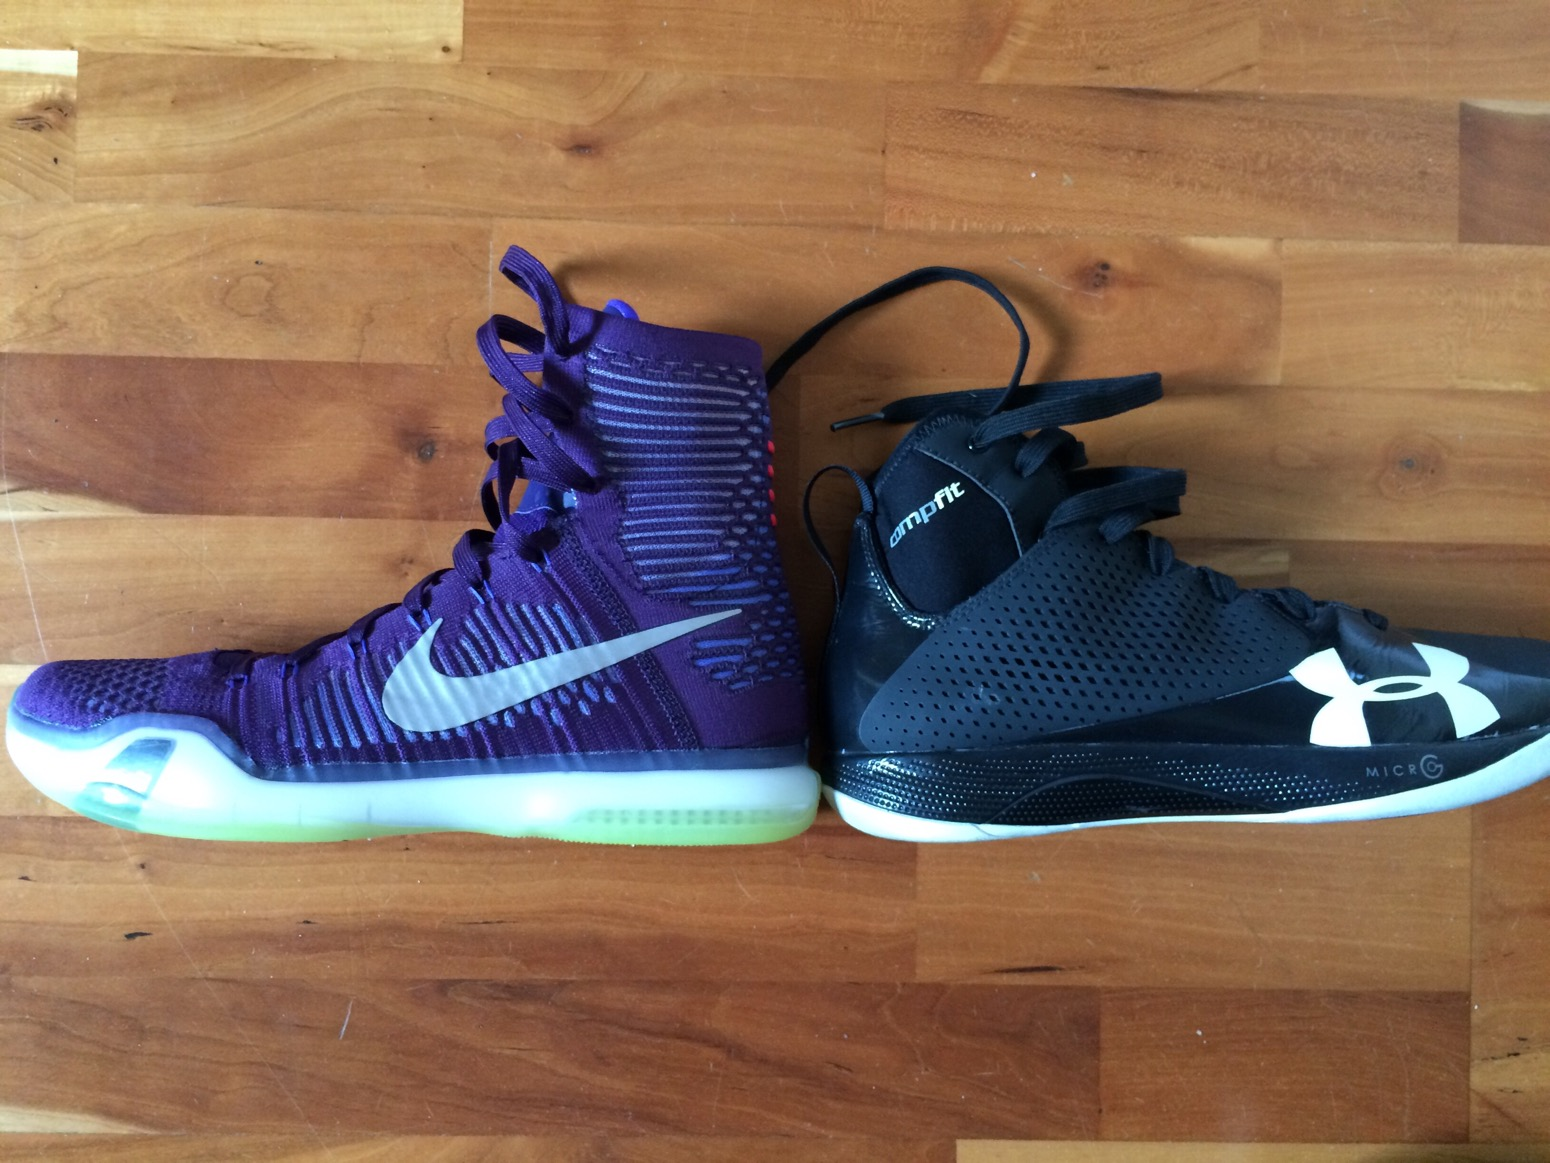 the best attitude 6c6d2 839a5 Nike Kobe X 10 Elite Performance Review and Comparison   schwollo.com